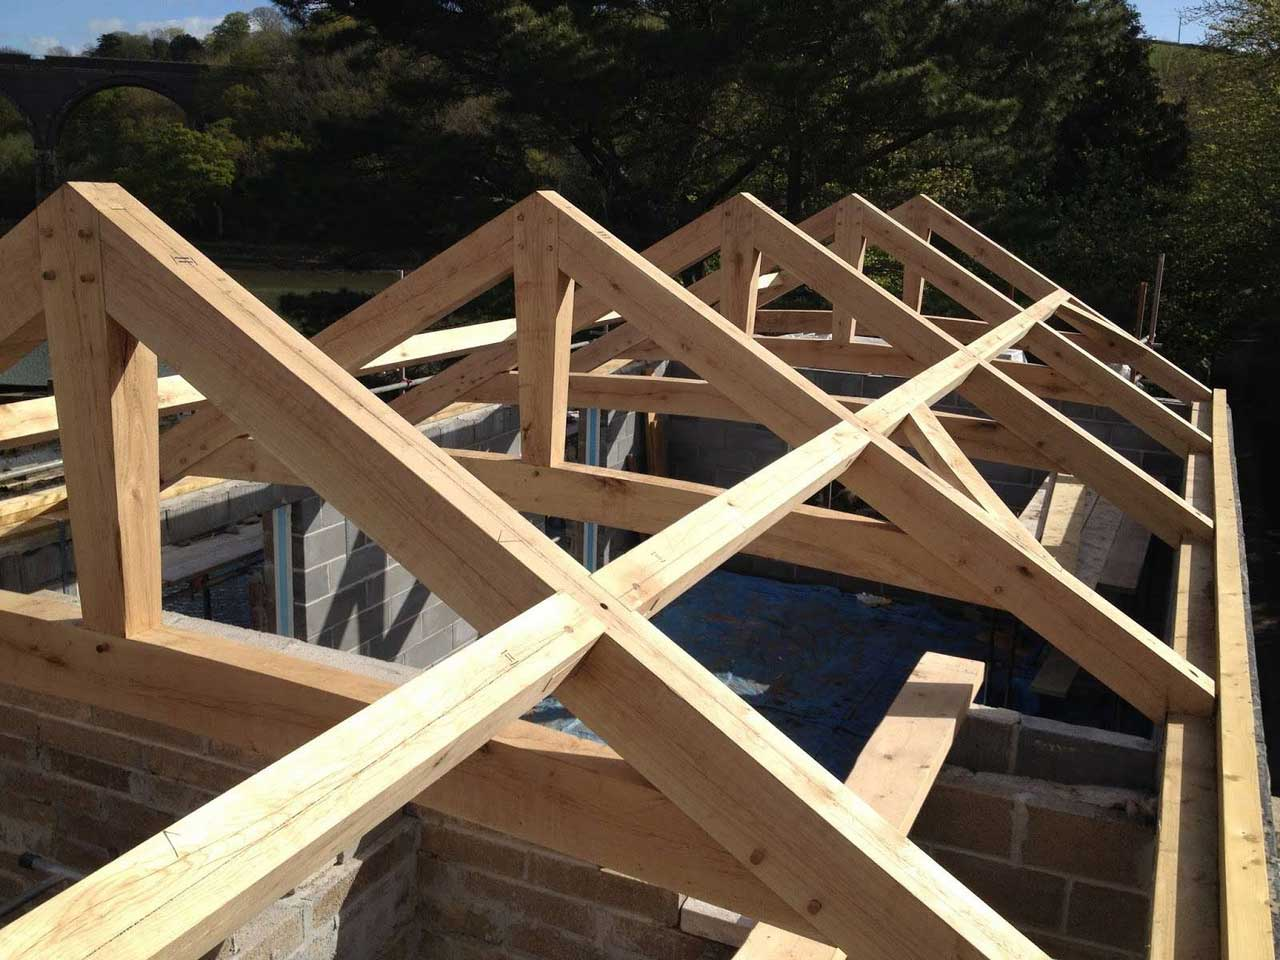 How to Build a Secure Roof Design Construction for Houses | Roy Home Design